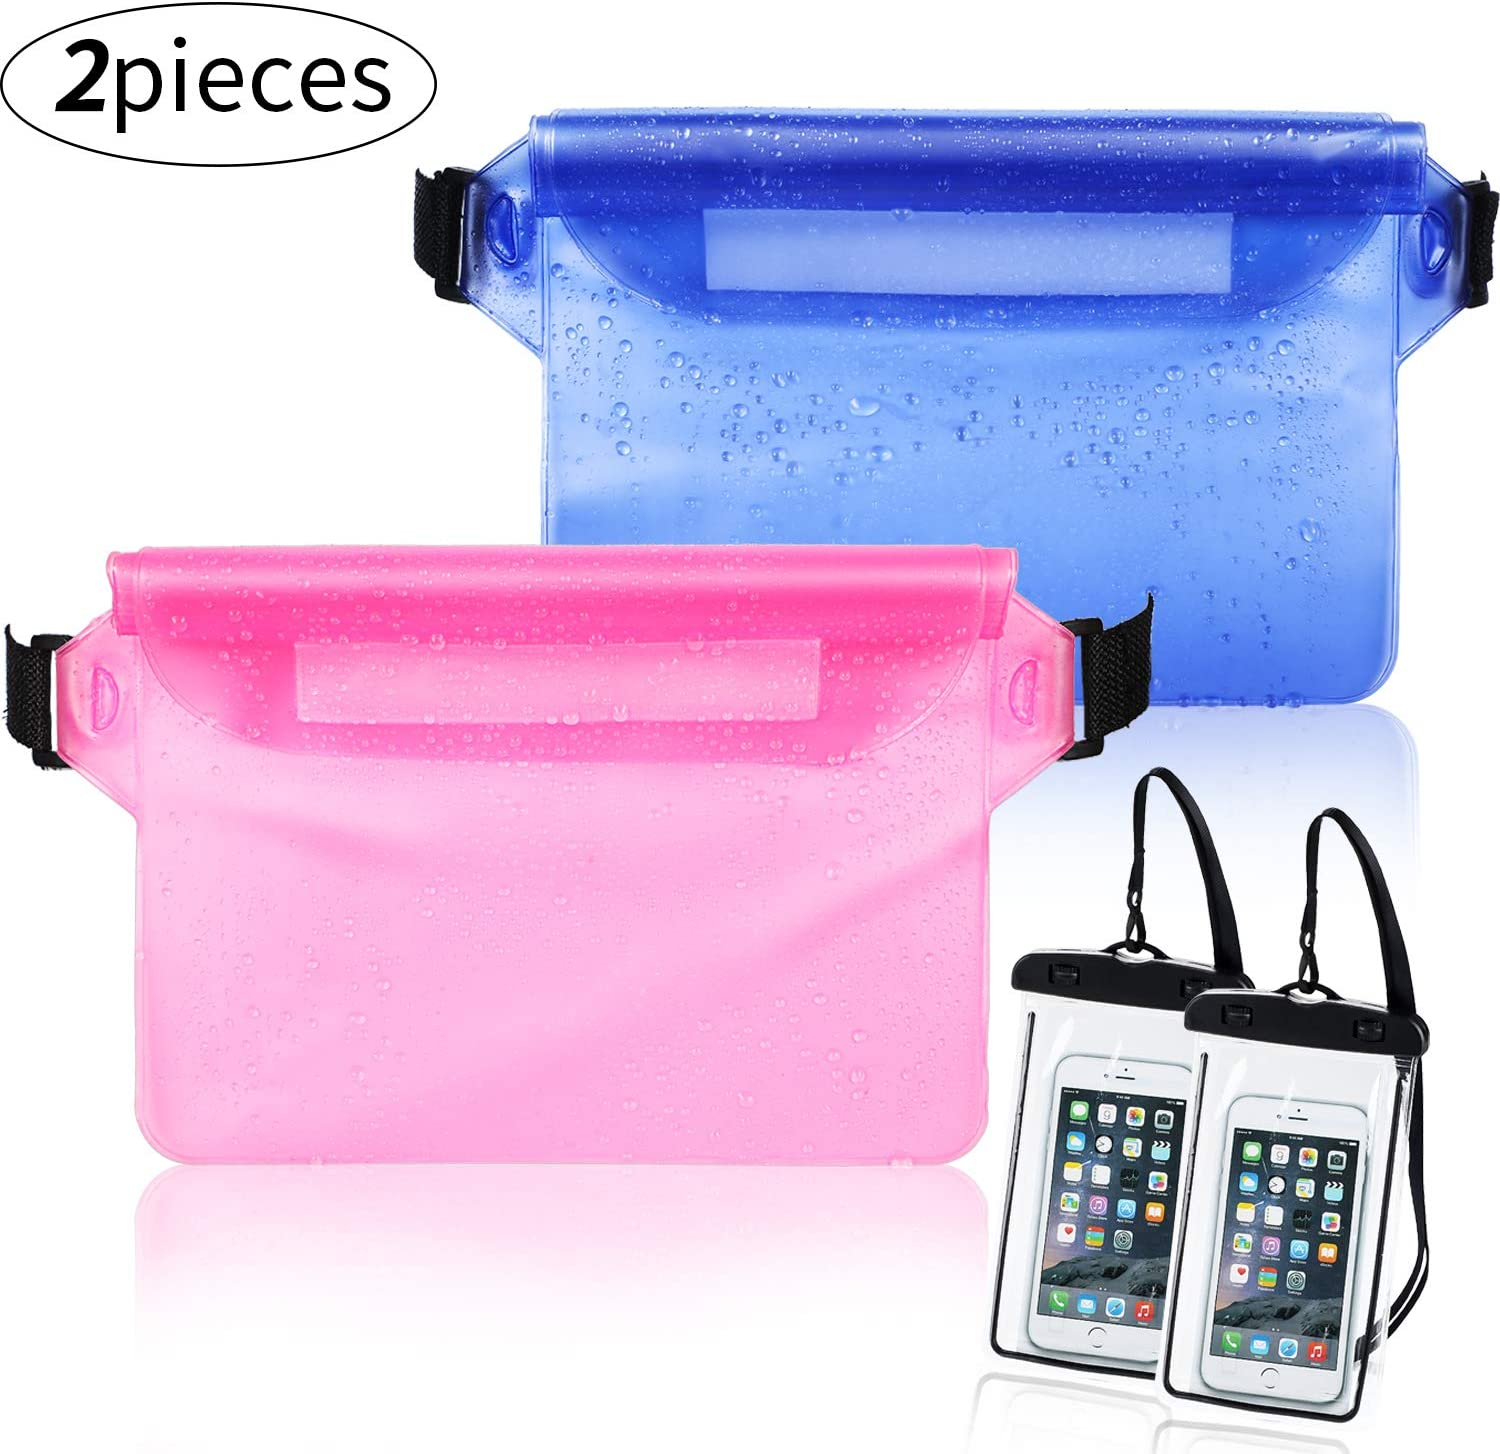 Weewooday 2 Pieces Waterproof Waist Pouch and 2 Piece Black Waterproof Phone Case Dry Bag for Boating Swimming Kayaking Beach Pool Water Parks, Keeping Phone Wallet Safe and Dry (Color Set 2)